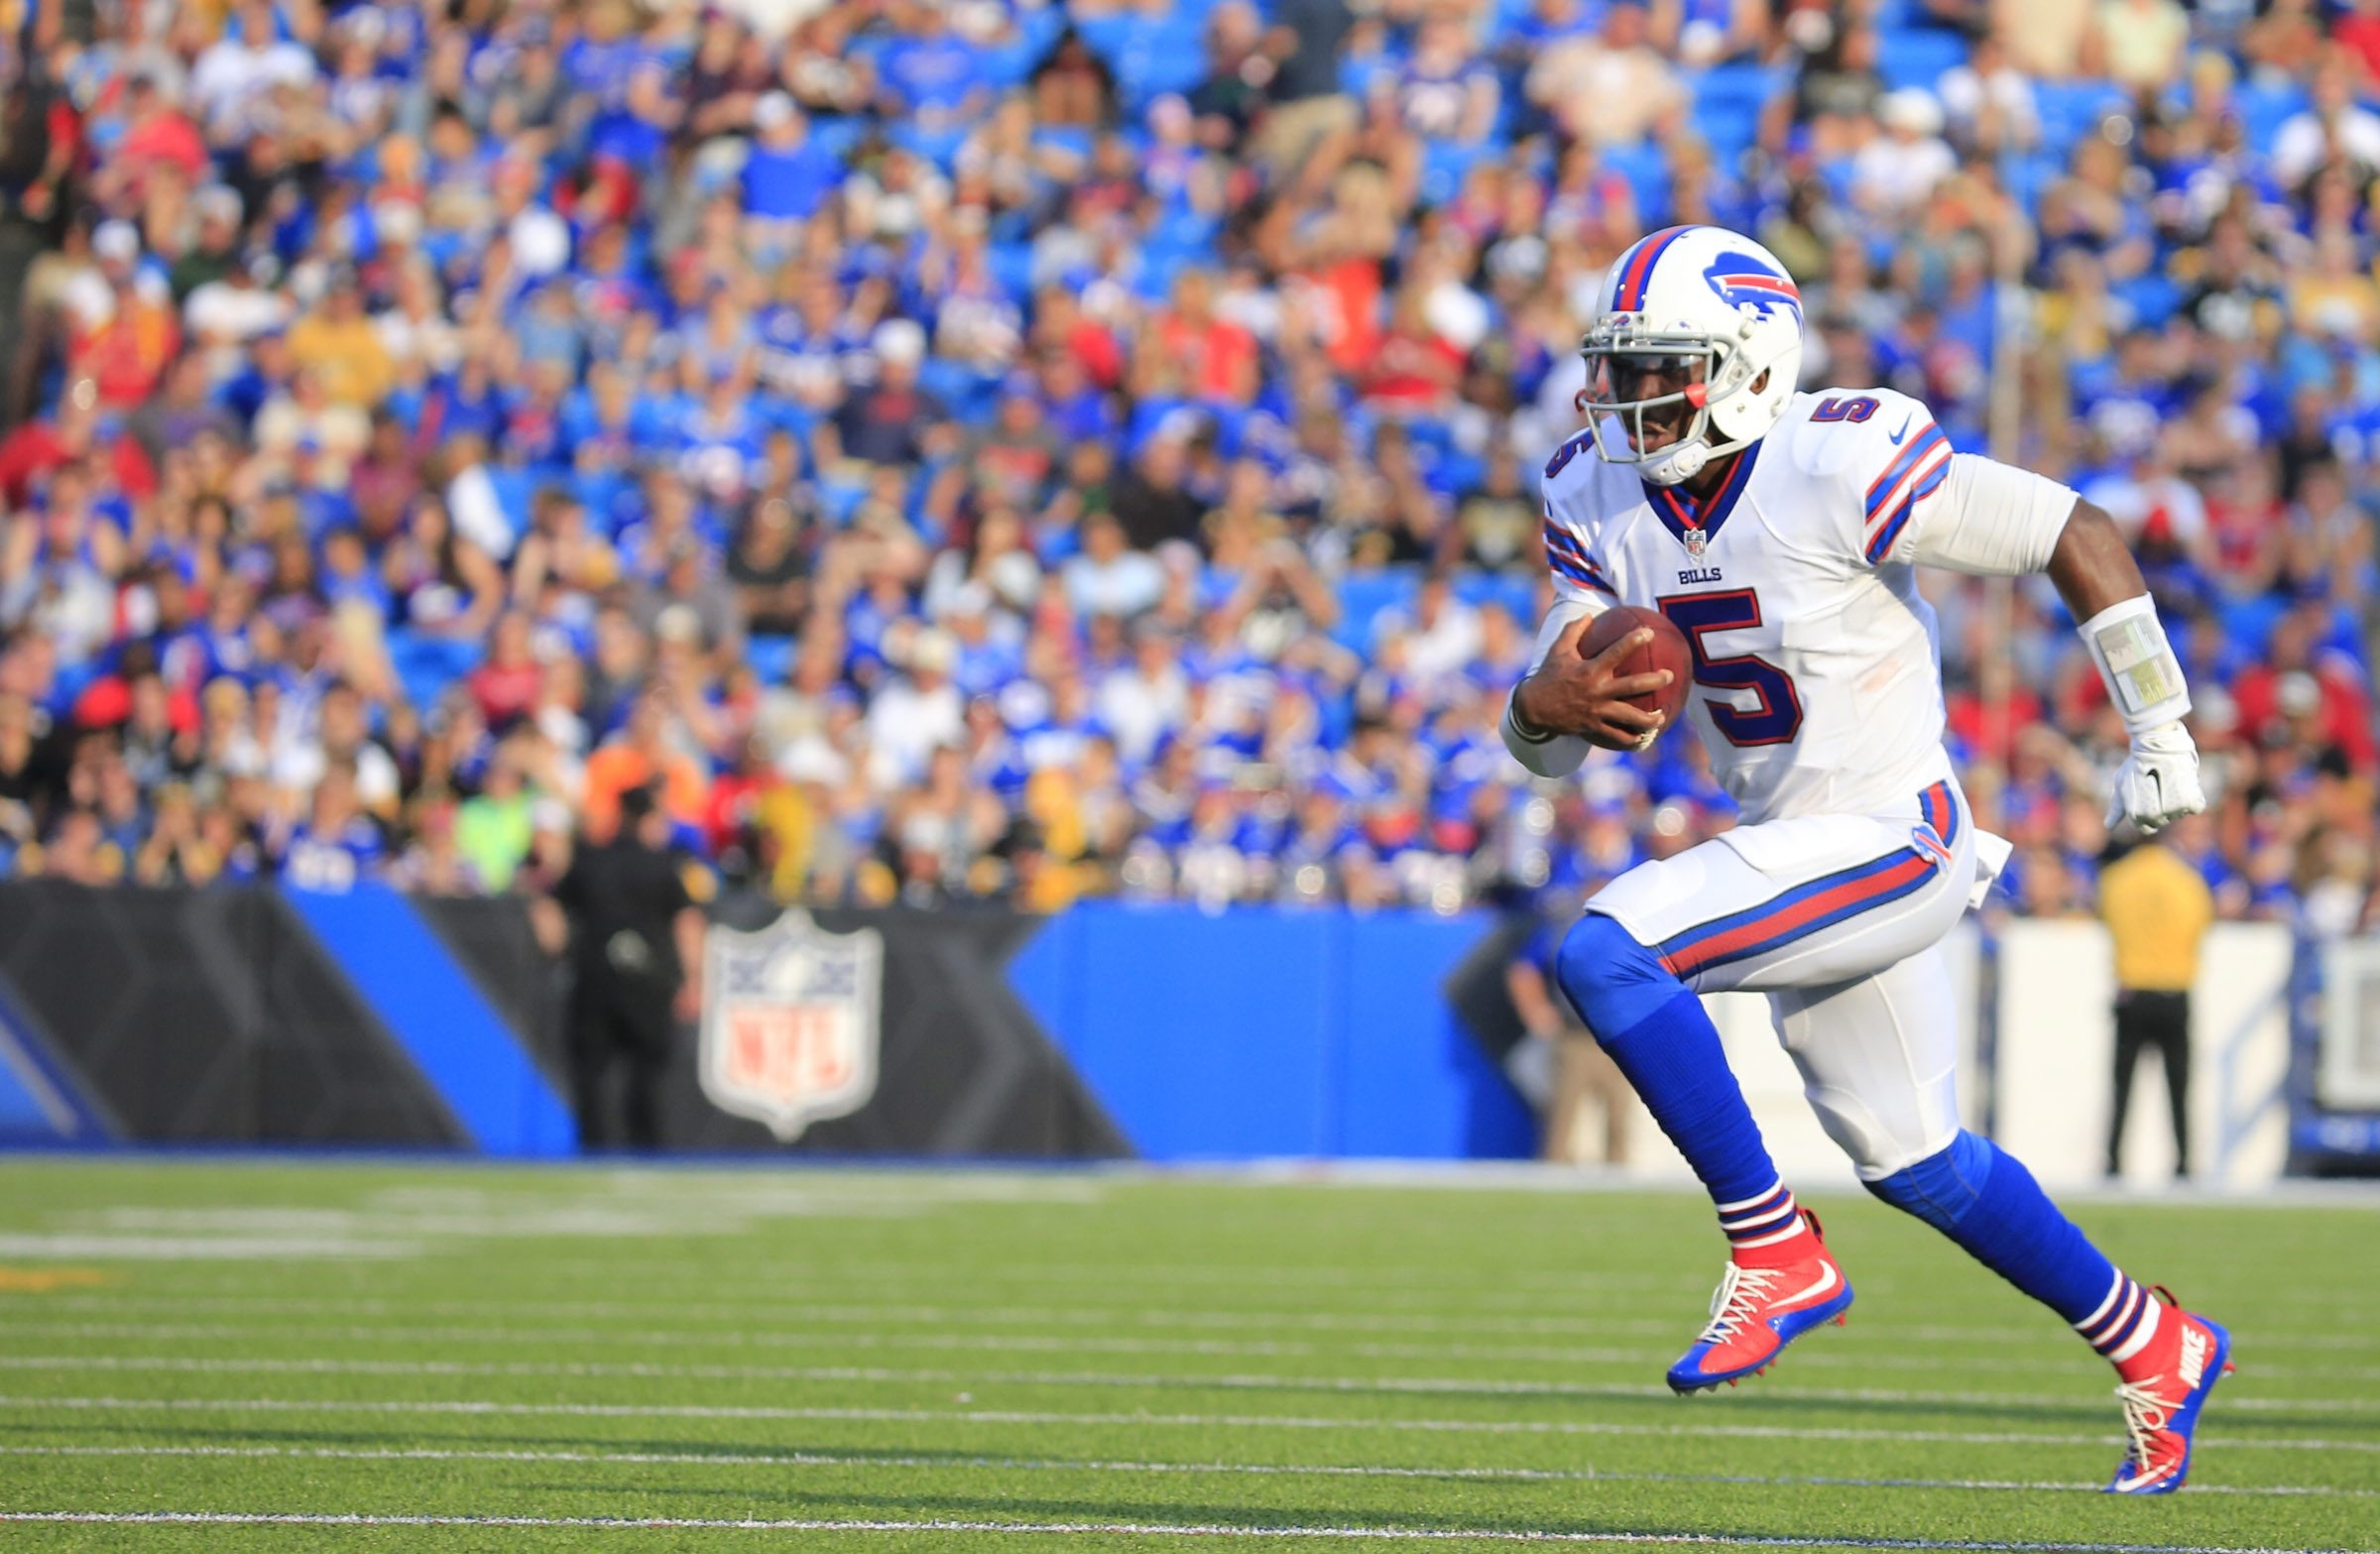 Buffalo Bills Tyrod Taylor during second half action against the Pittsburgh Steelers at Ralph Wilson Stadium on Saturday, Aug. 29, 2015.  (Harry Scull Jr./Buffalo News)